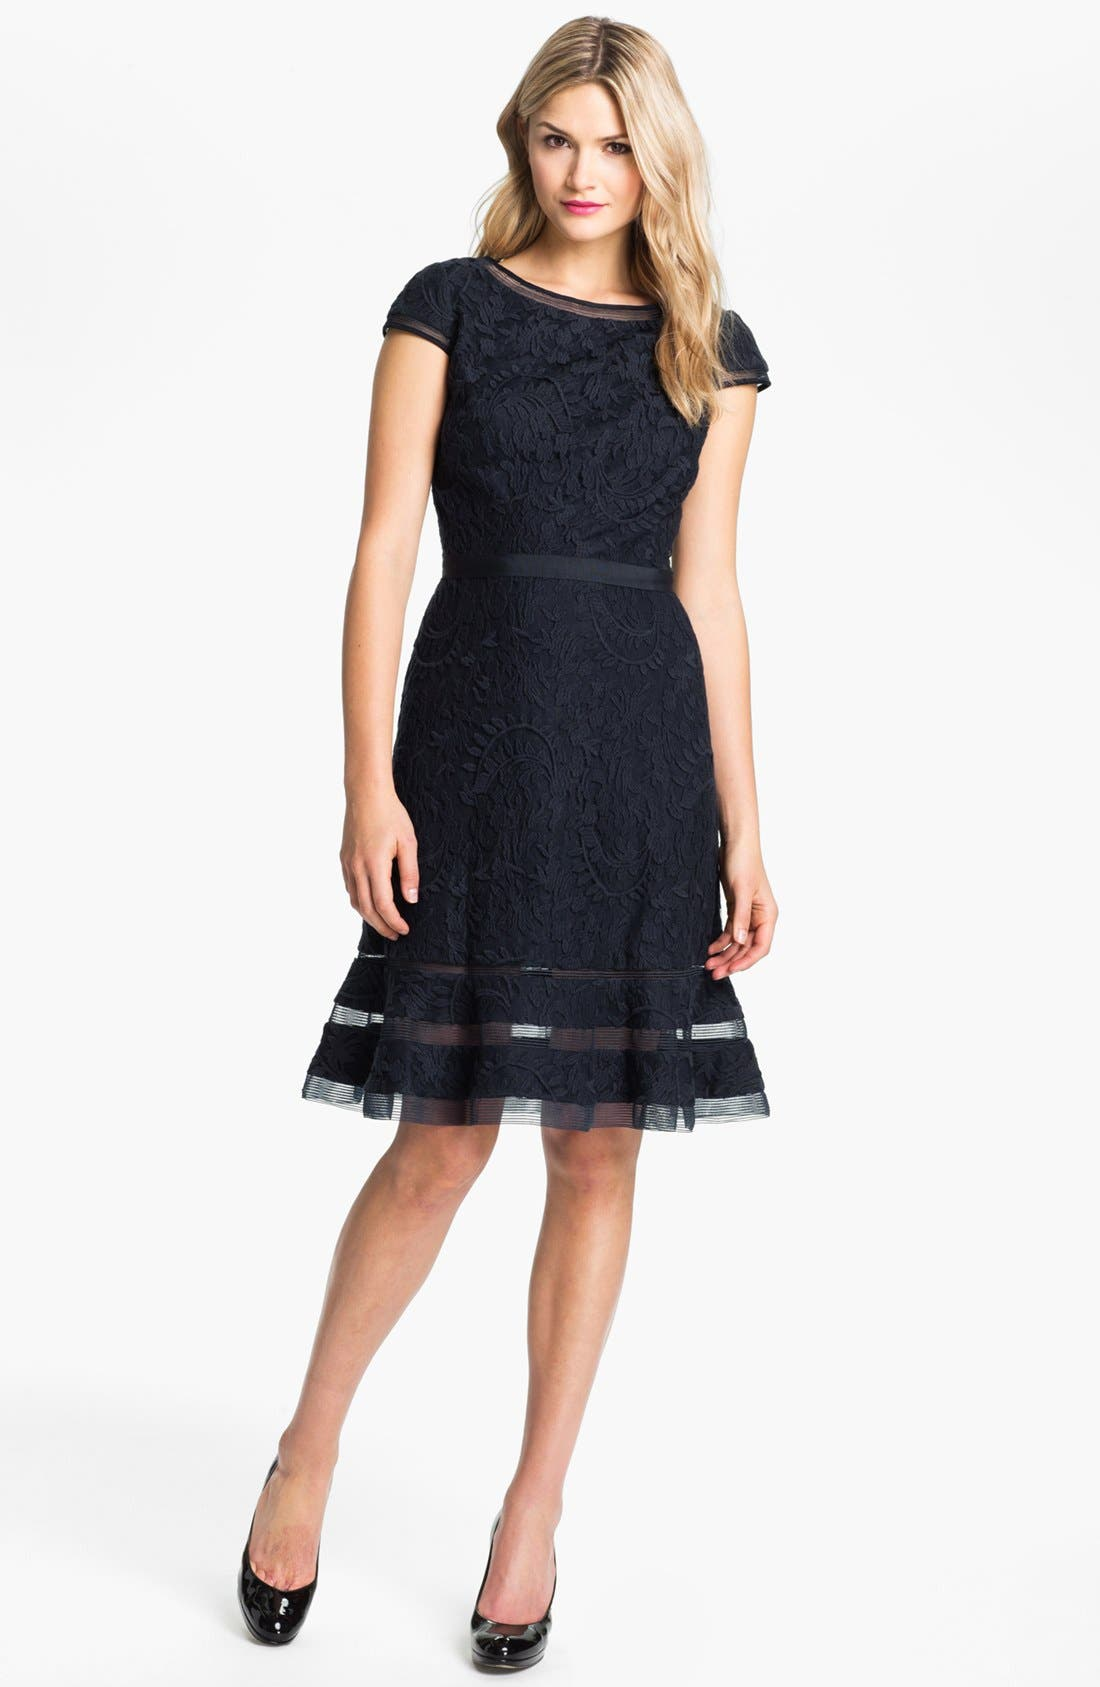 Alternate Image 1 Selected - Adrianna Papell Lace Fit & Flare Dress (Regular & Petite)